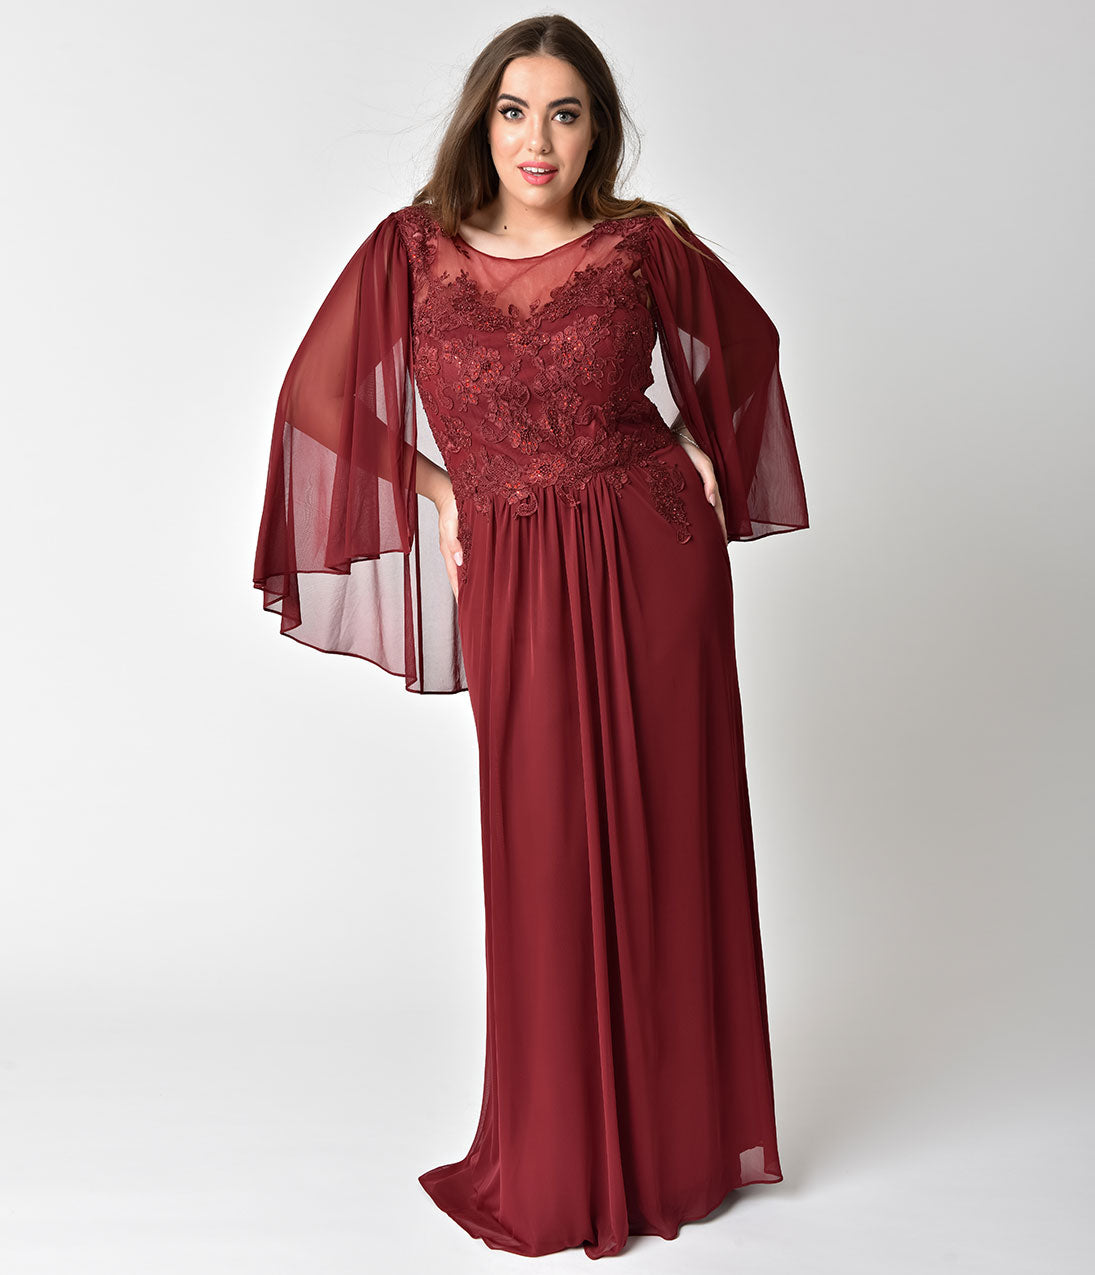 1930s Art Deco Plus Size Dresses | Tea Dresses, Party Dresses Plus Size Burgundy Red Embellished Mesh Sleeved Cape Gown $238.00 AT vintagedancer.com